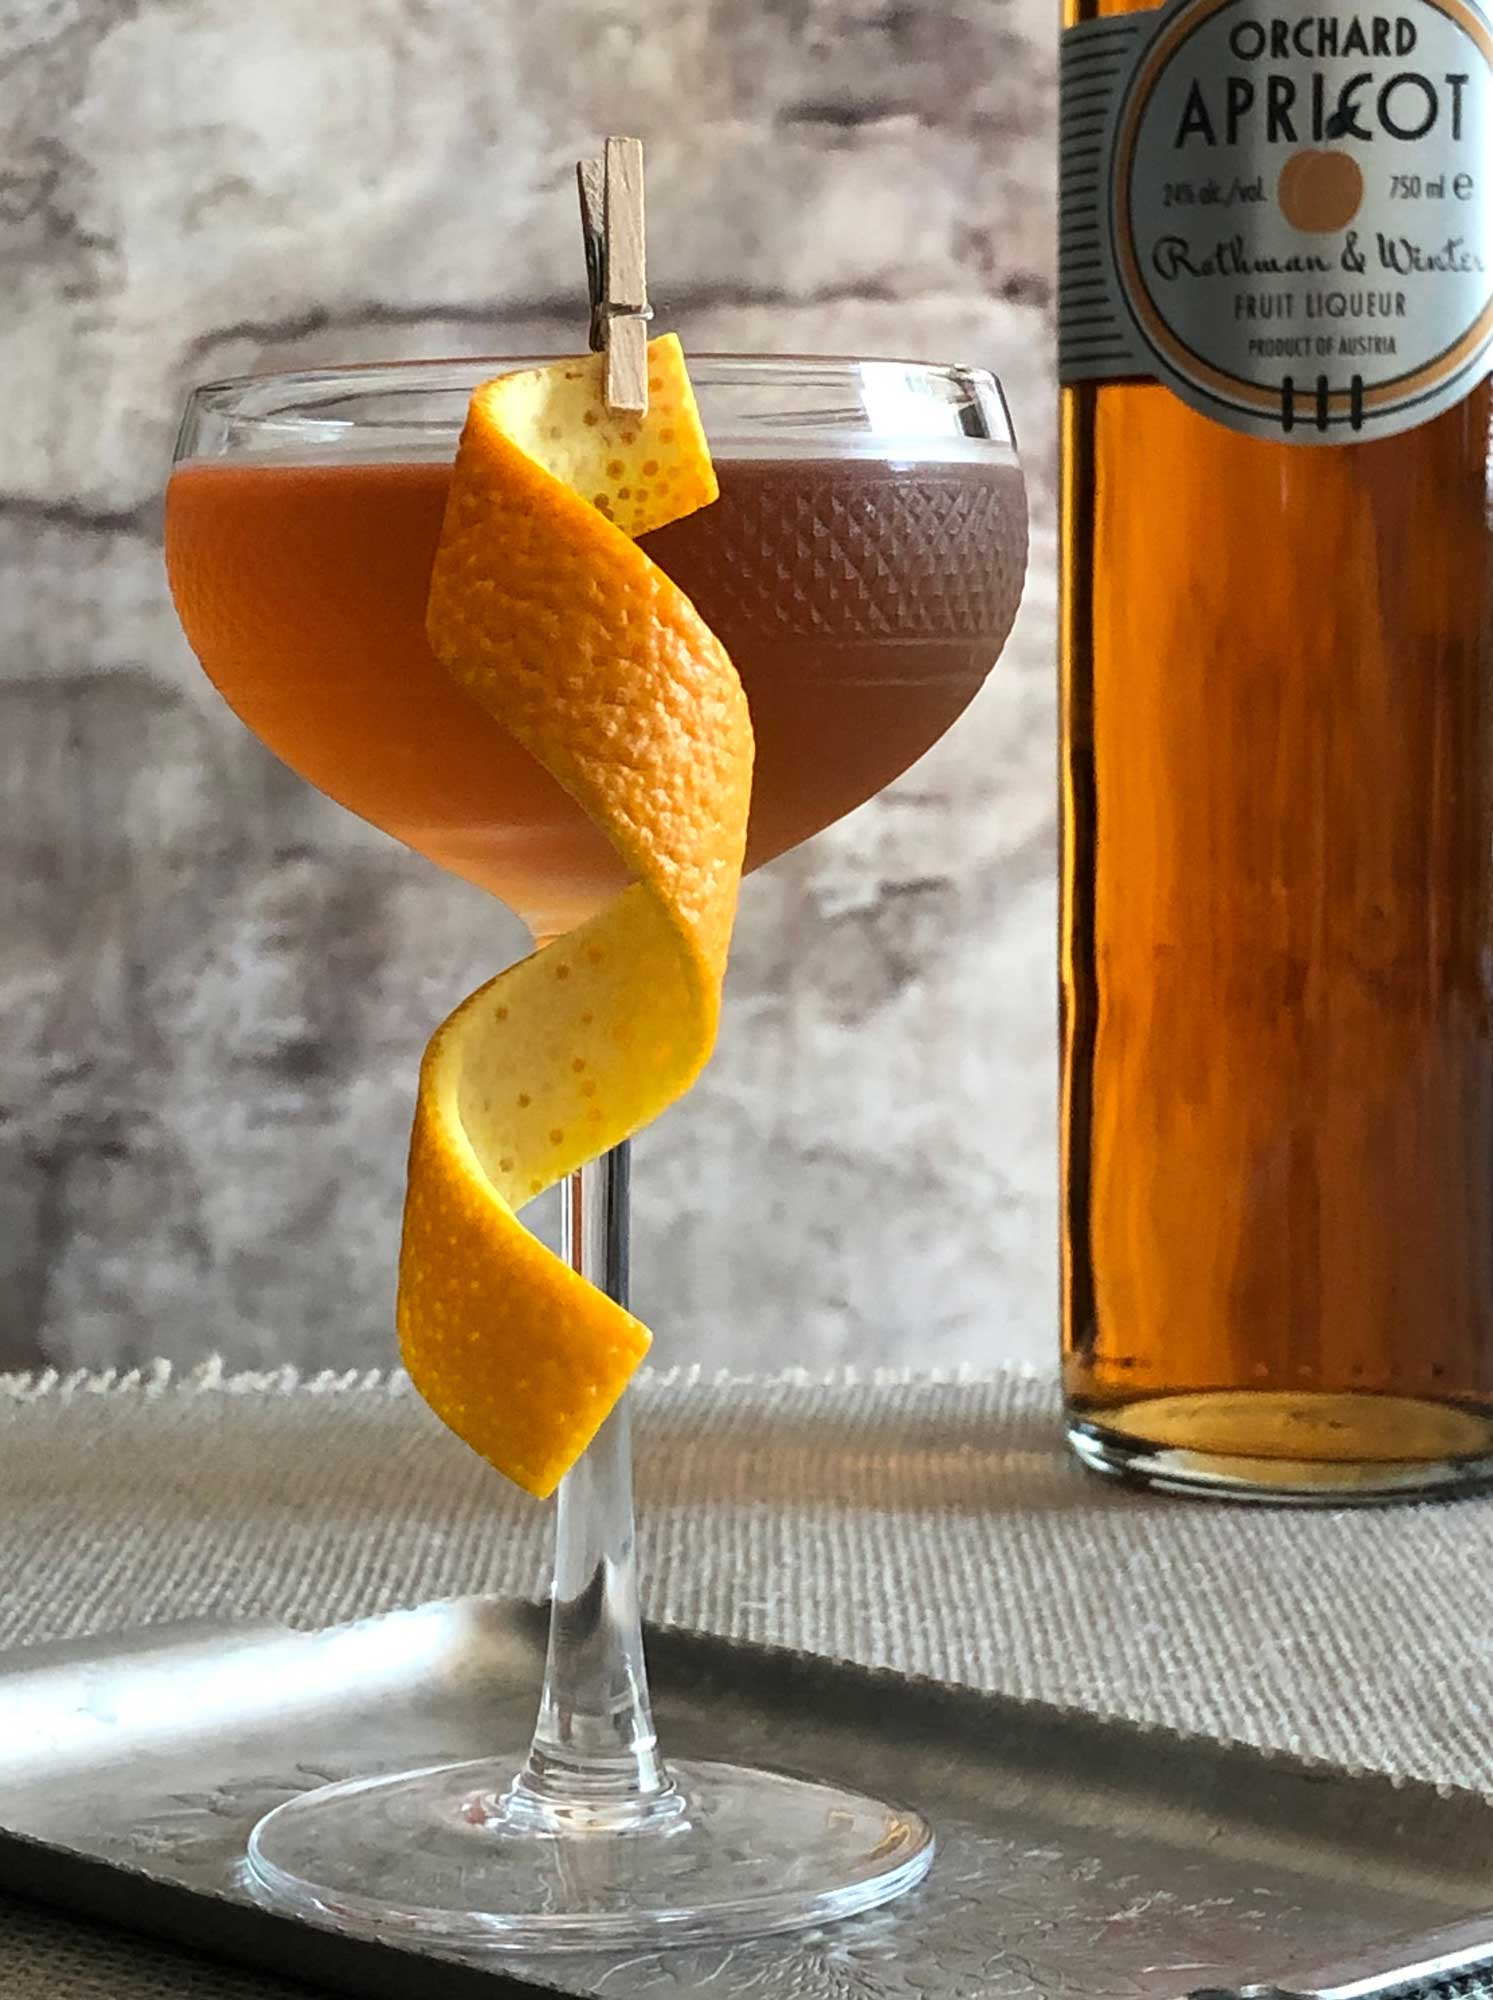 An example of the Angel Face, the mixed drink (cocktail), by Savoy Cocktail Book, featuring Hayman's London Dry Gin, calvados, and Rothman & Winter Orchard Apricot Liqueur; photo by Lee Edwards